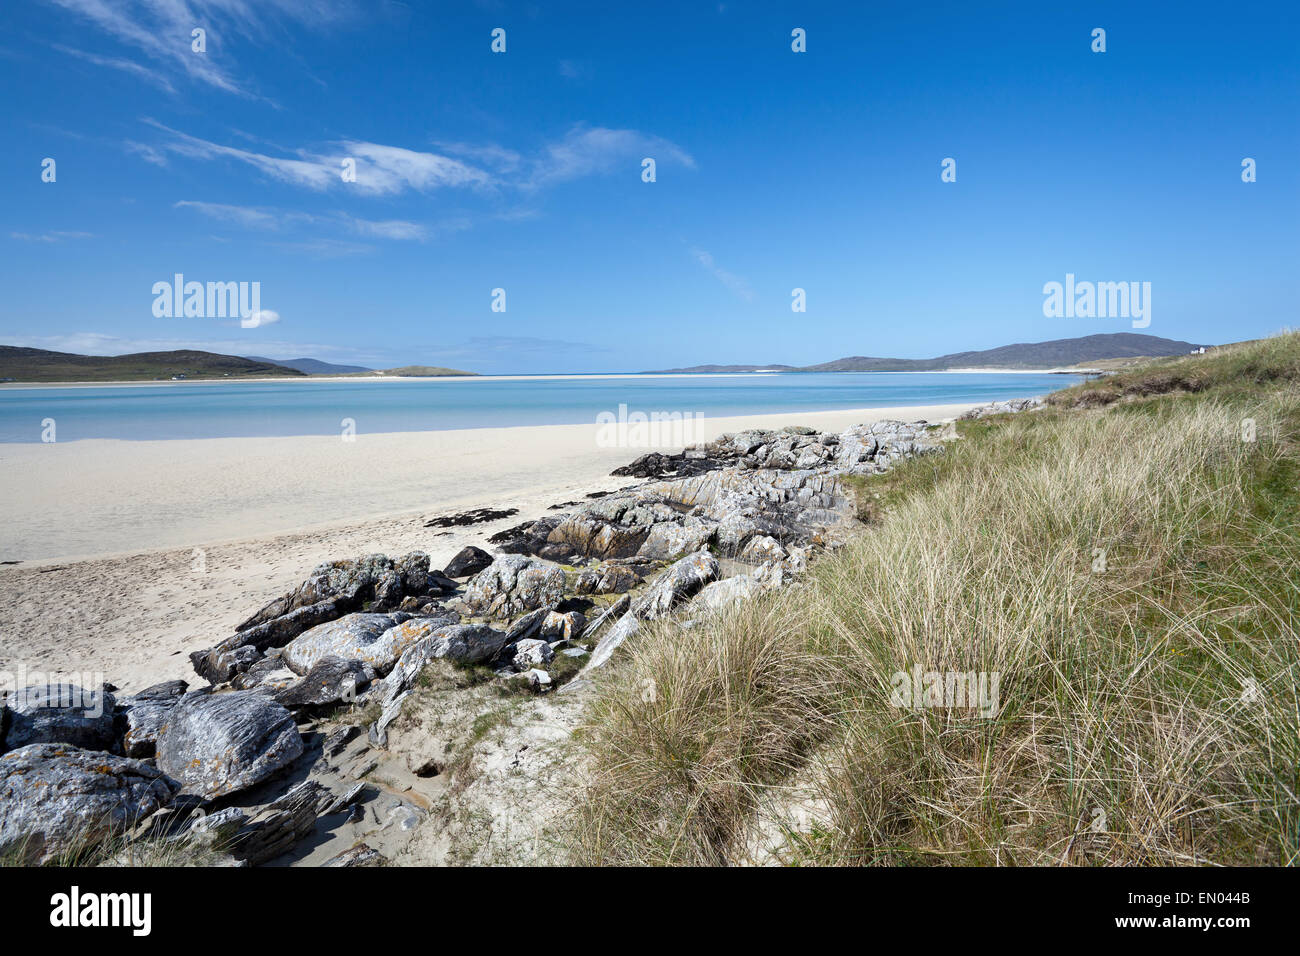 Tidal beach of Luskentyre, Isle of Harris, Outer Hebrides, Scotland. - Stock Image